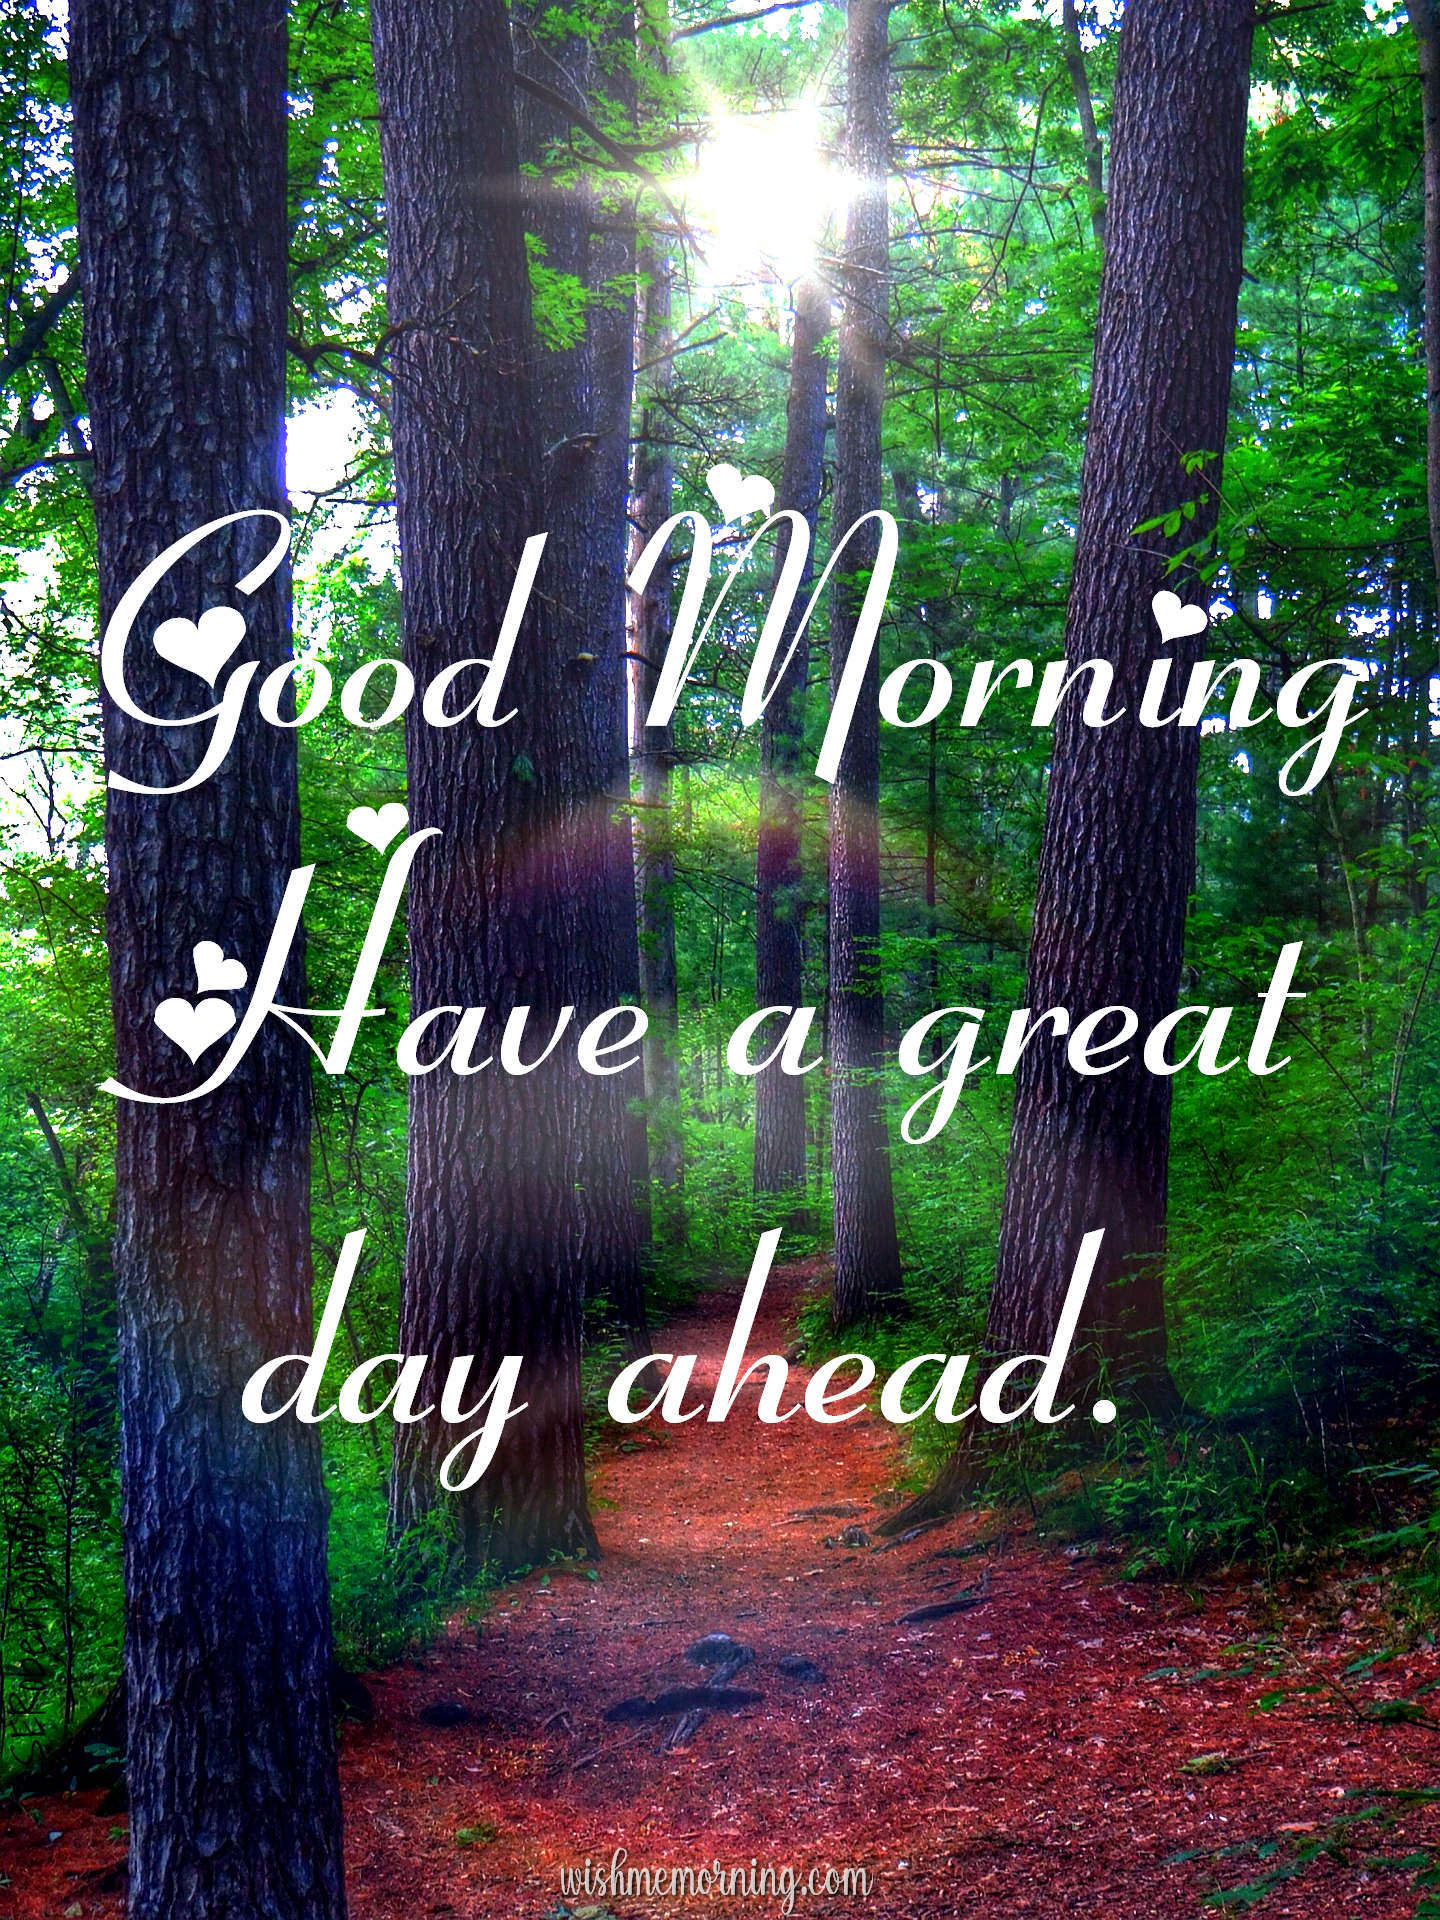 Beautiful Trees Woods Nature Images Wishes wishmemorning.com 19